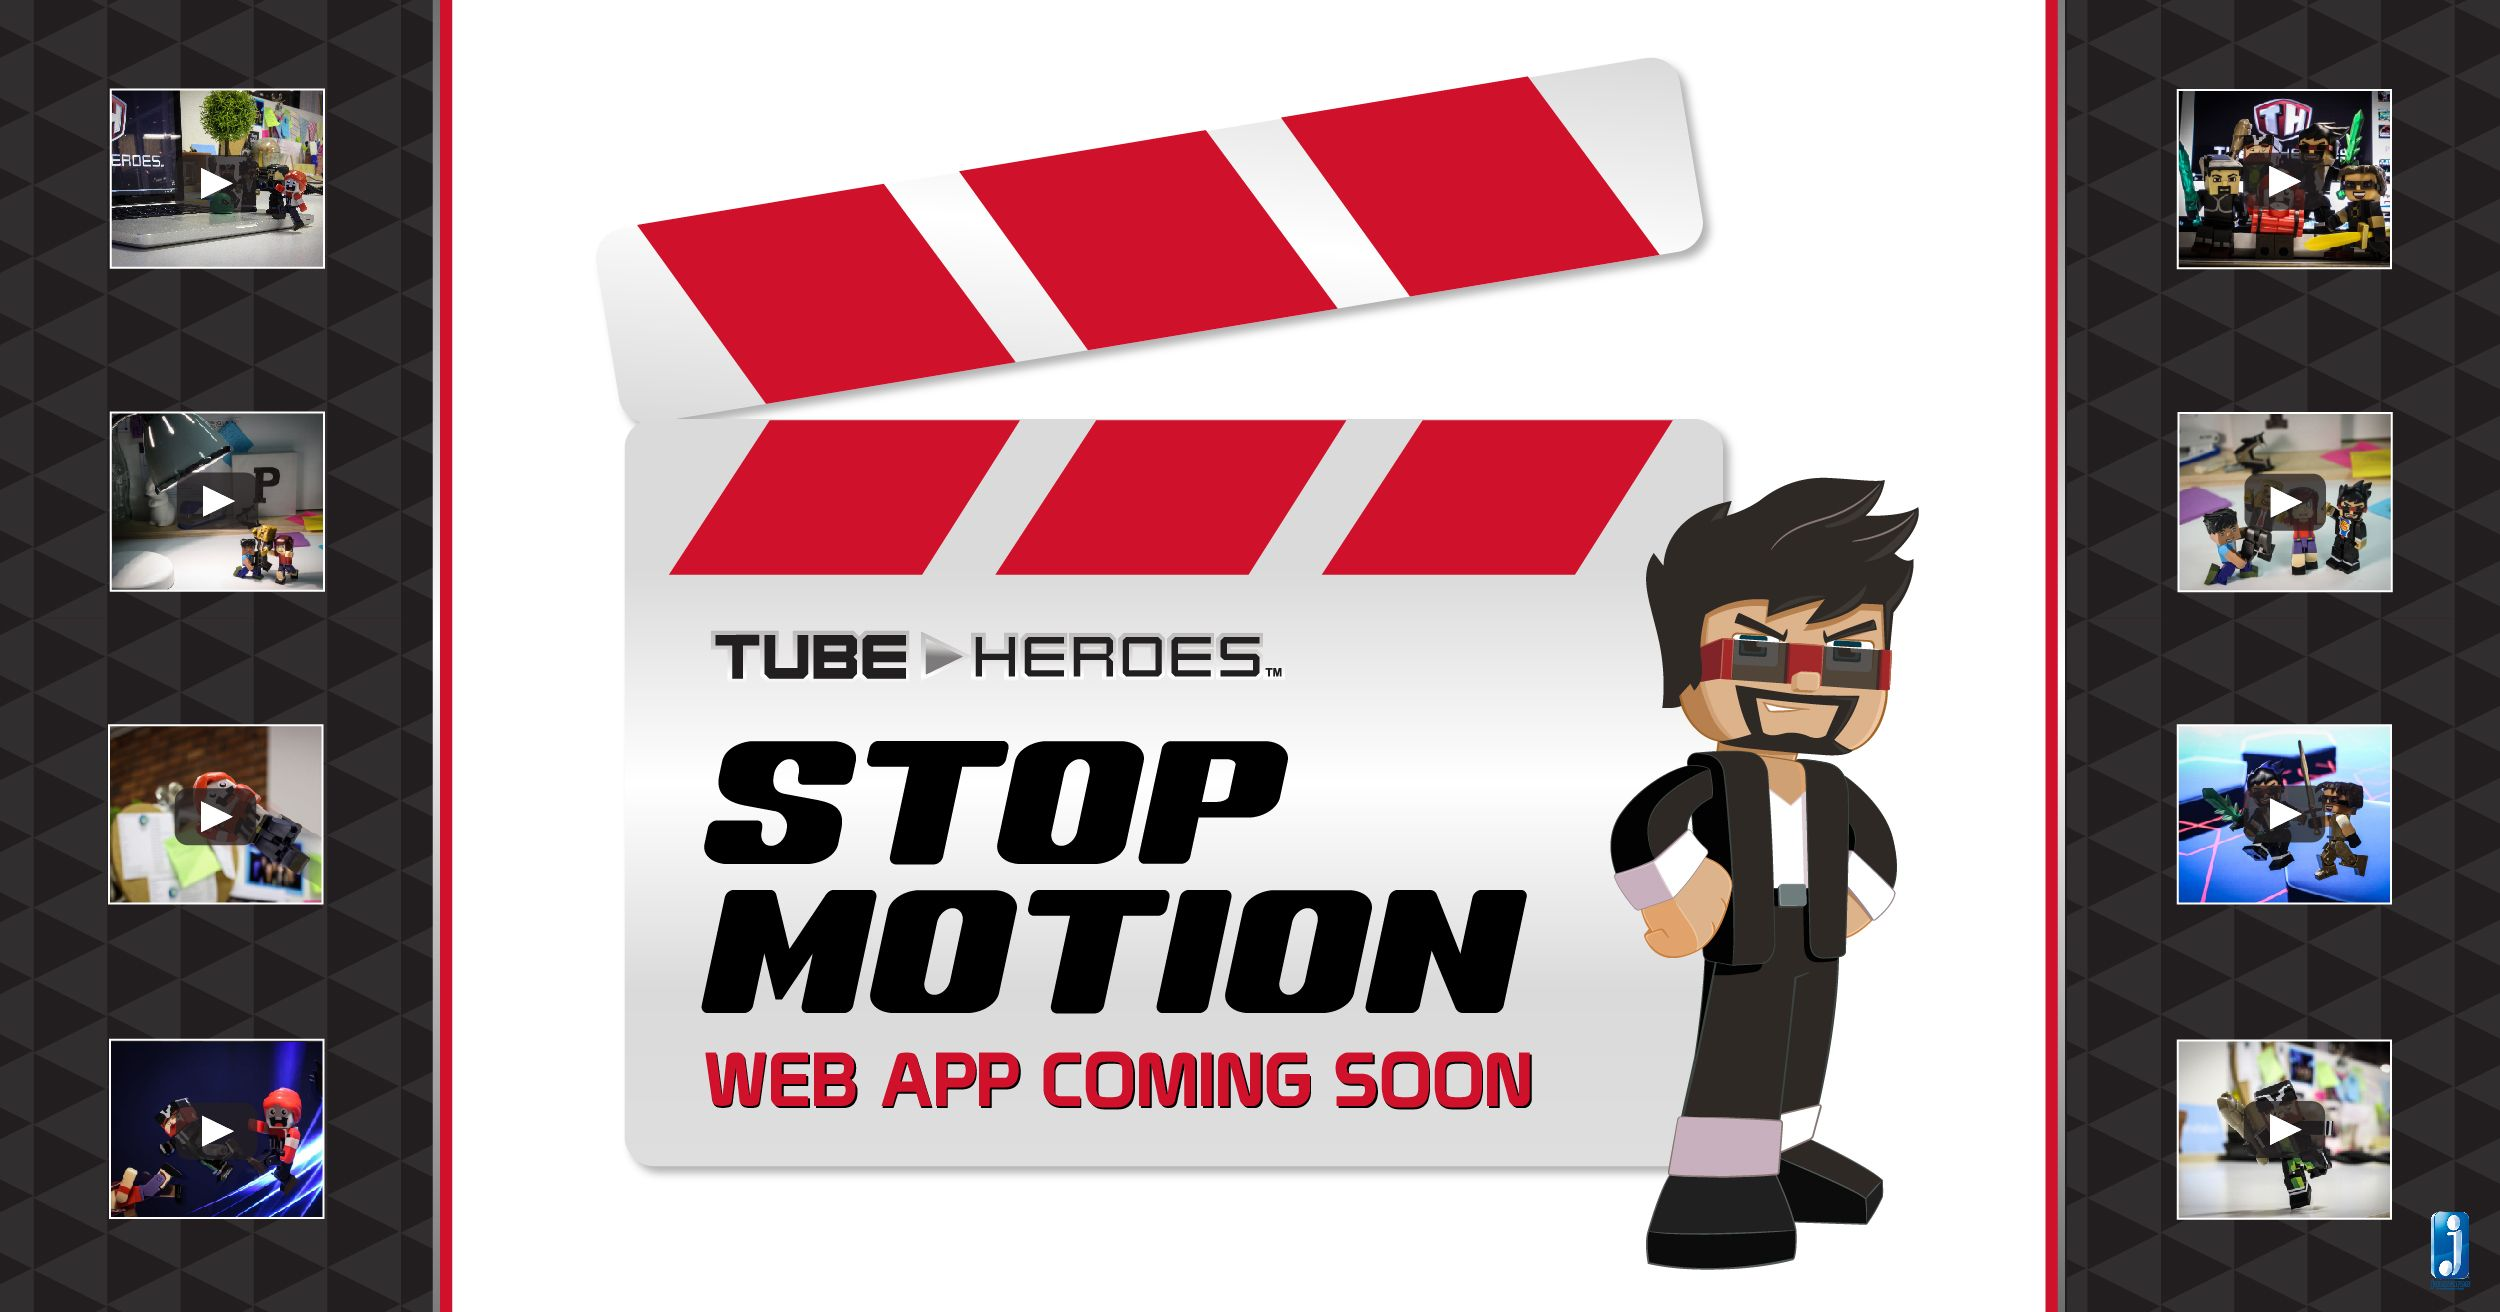 How would you like to make your own tube heroes stop